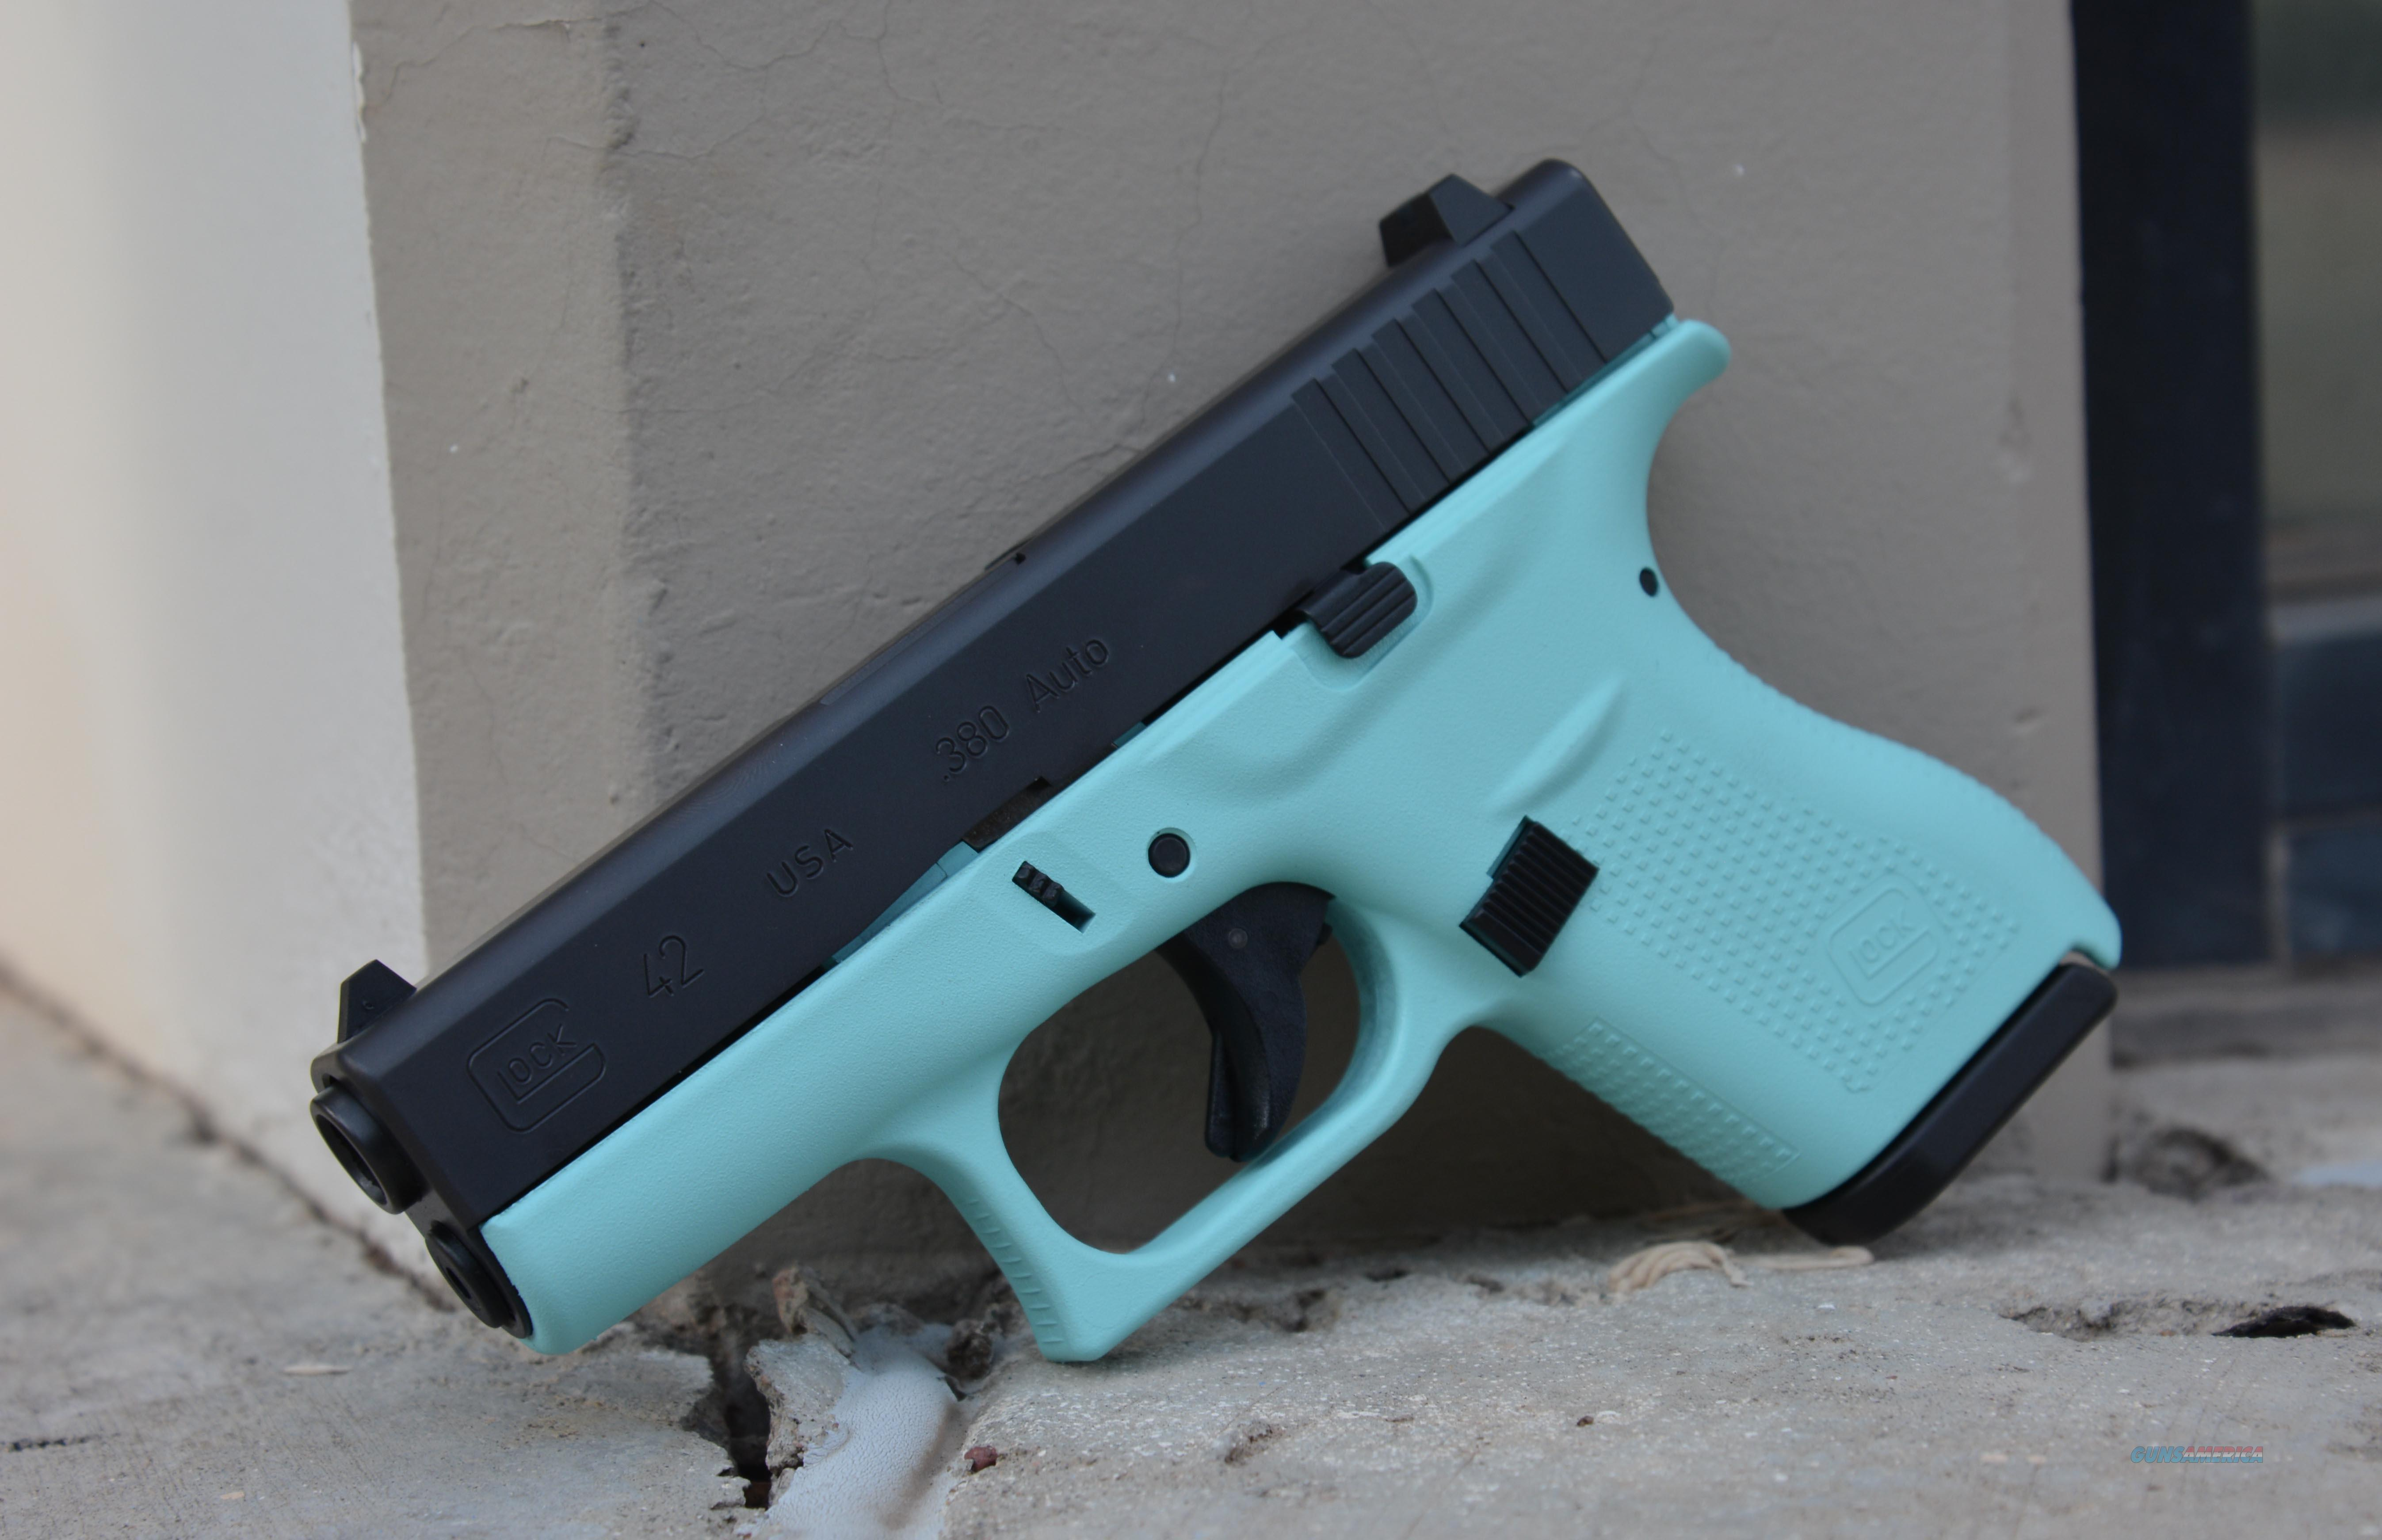 X-Werks Glock 42 Tiffany Blue .380 No CC Fee  Guns > Pistols > Glock Pistols > 42